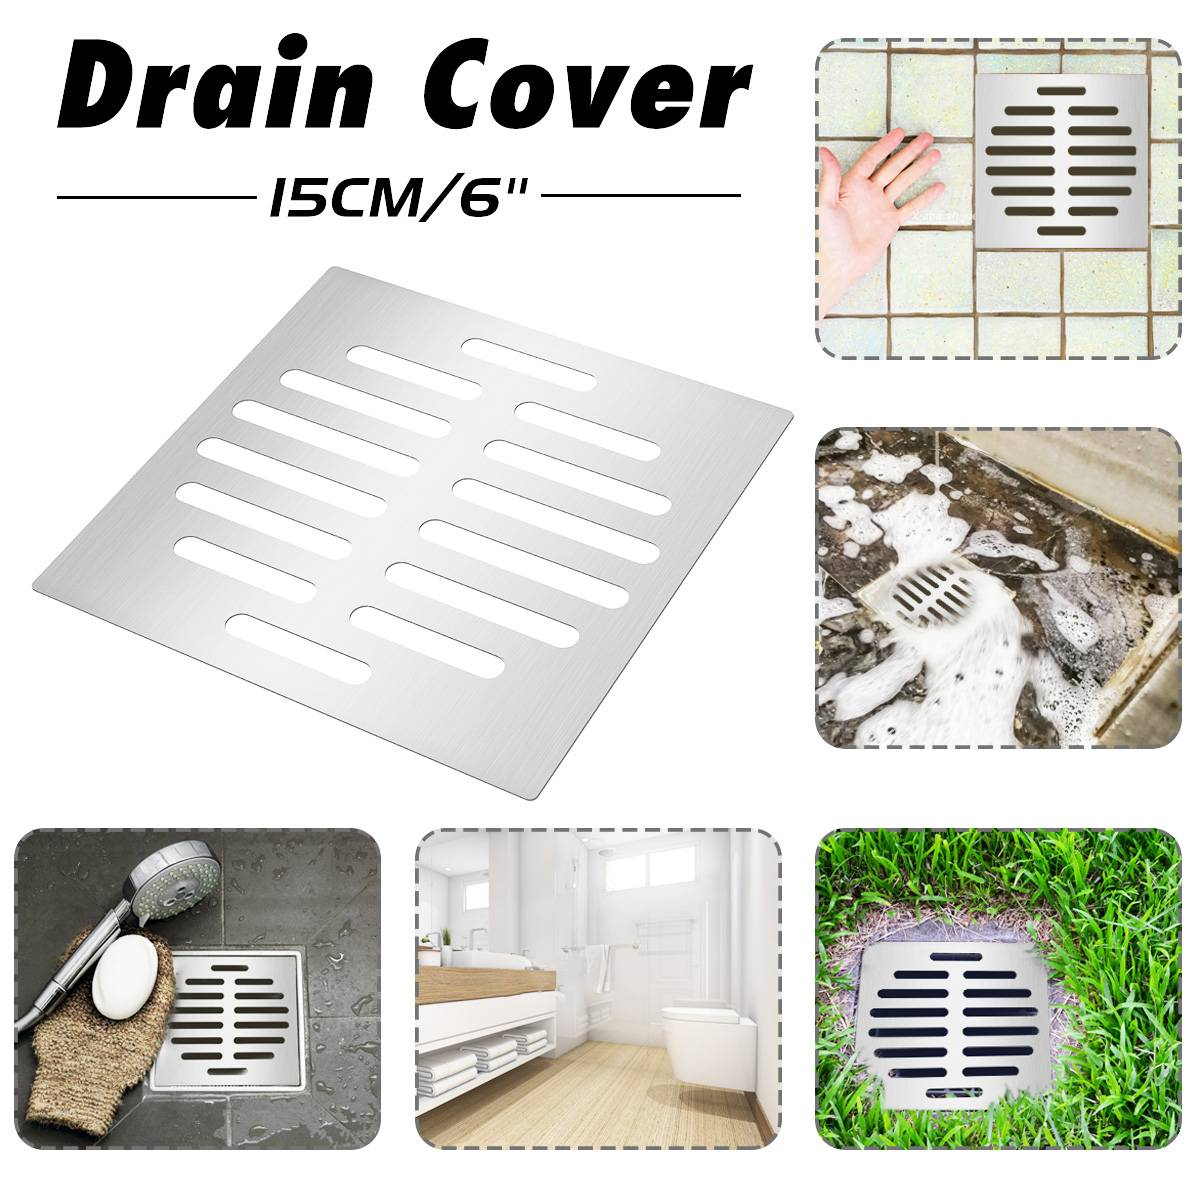 Xueqin NEW Shower Drain Thick Stainless Steel Floor Drain Cover Strainer Bathroom Bath Accessories Garden Drains Cover 15X15cm